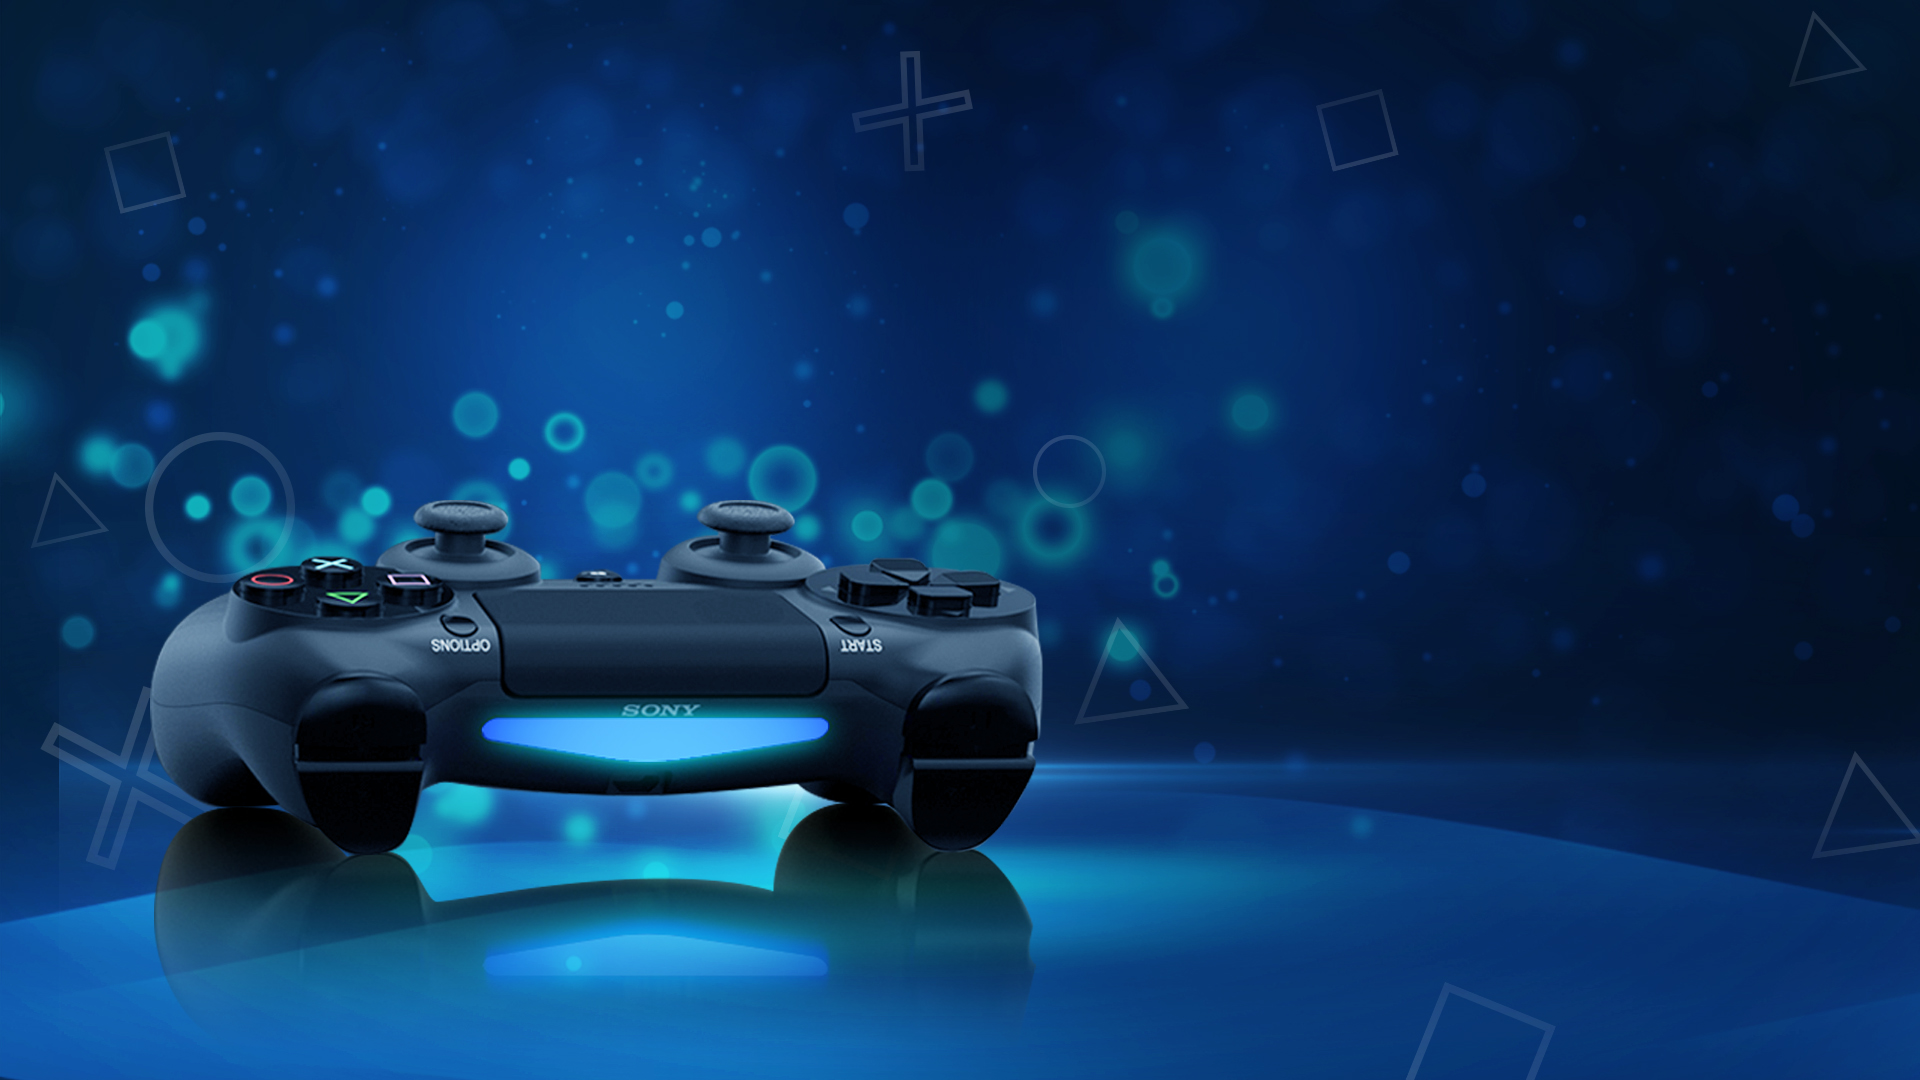 Sony says PlayStation 5 is a niche product for hardcore players